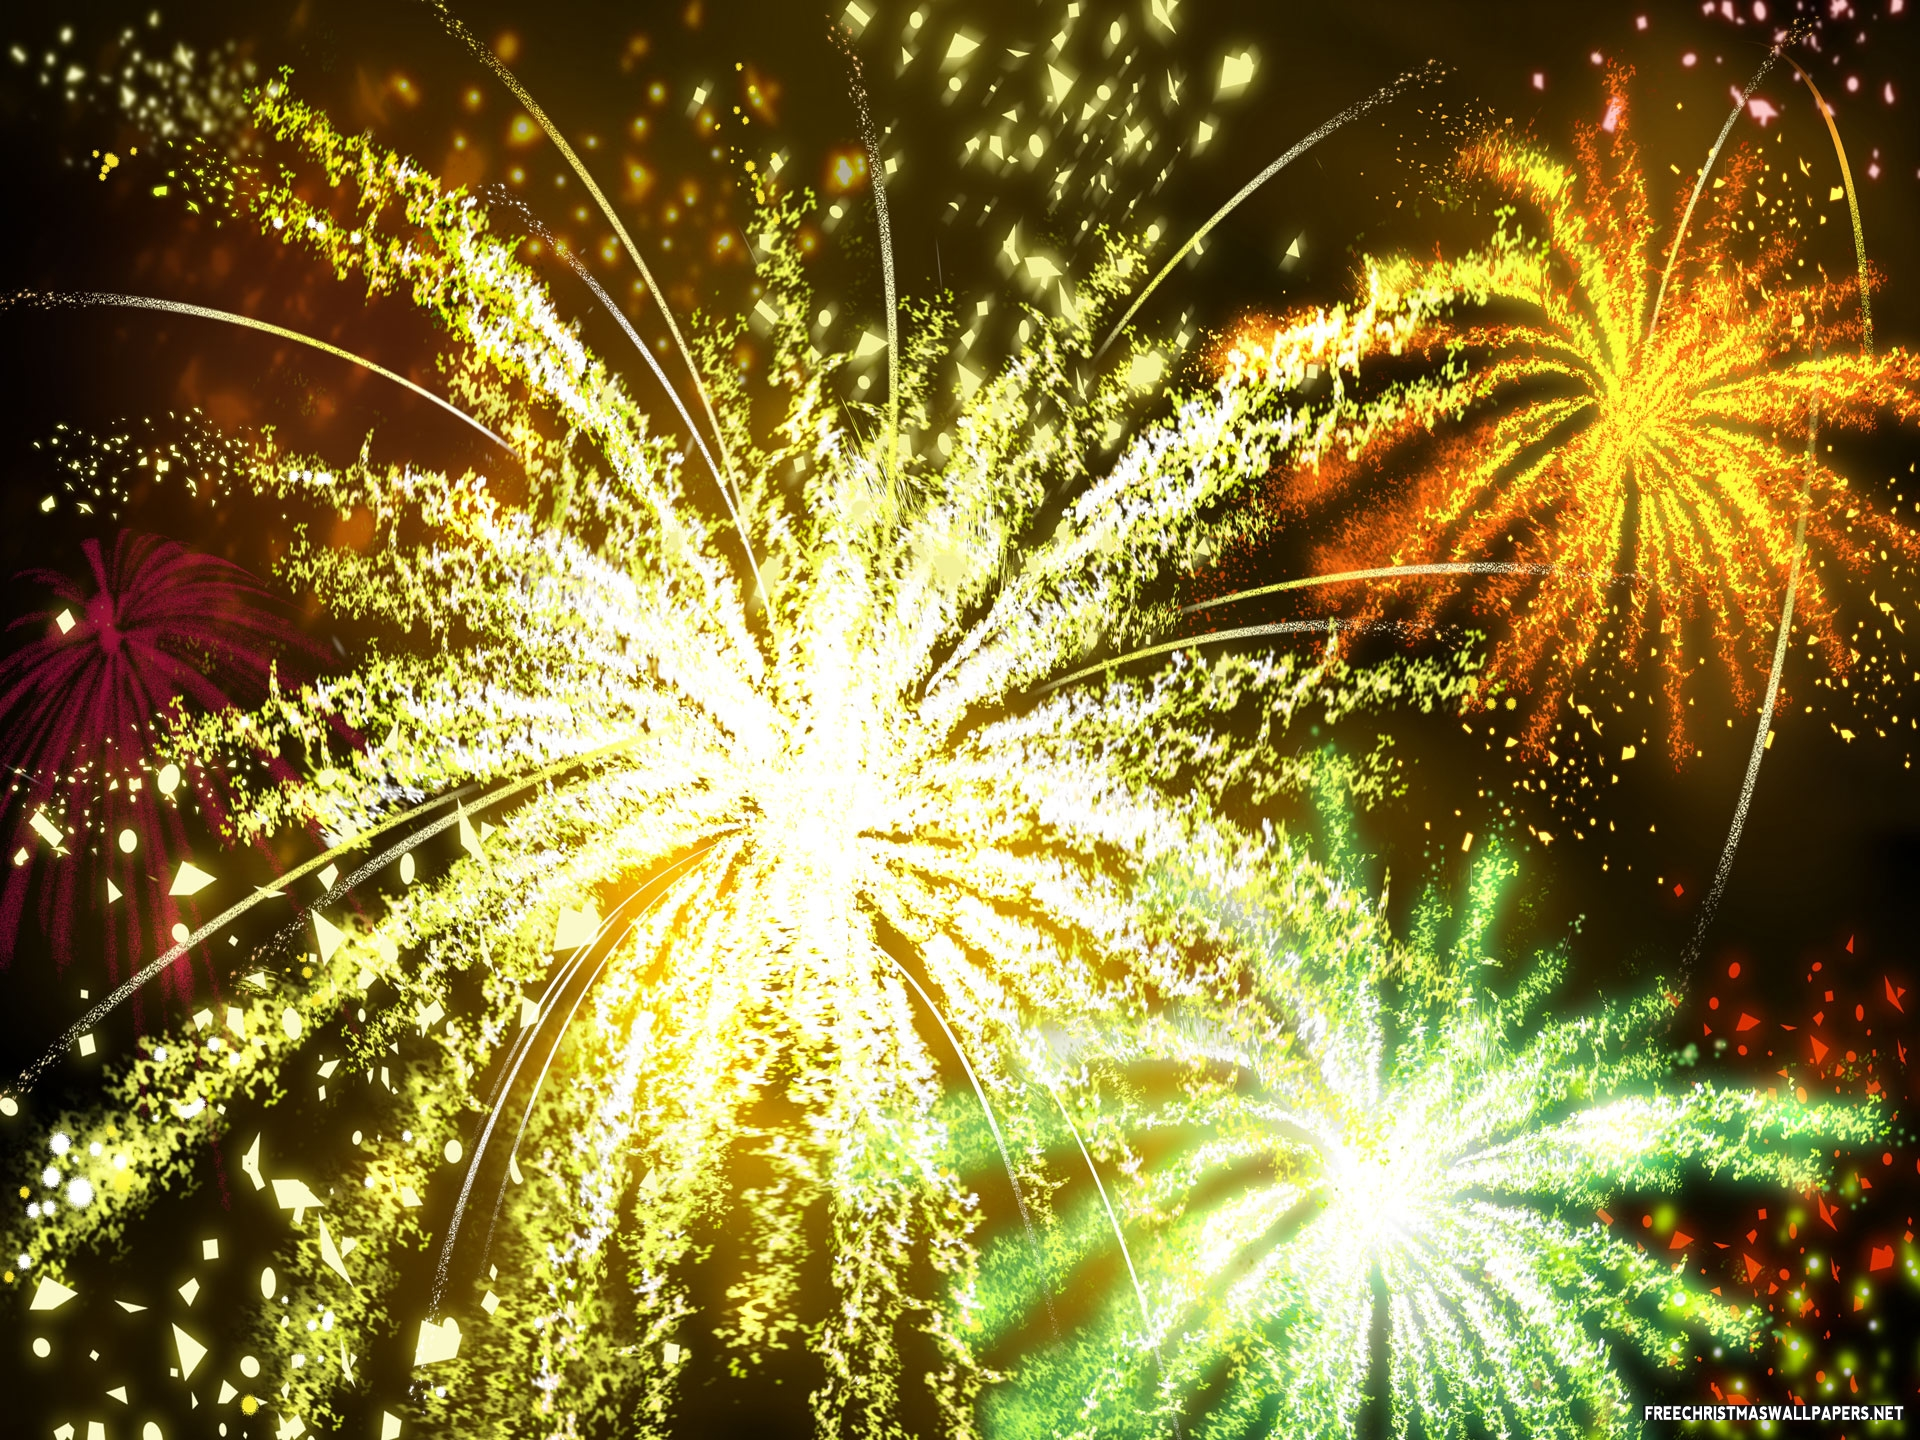 39631516, Fireworks Backgrounds, Sondra Grabill